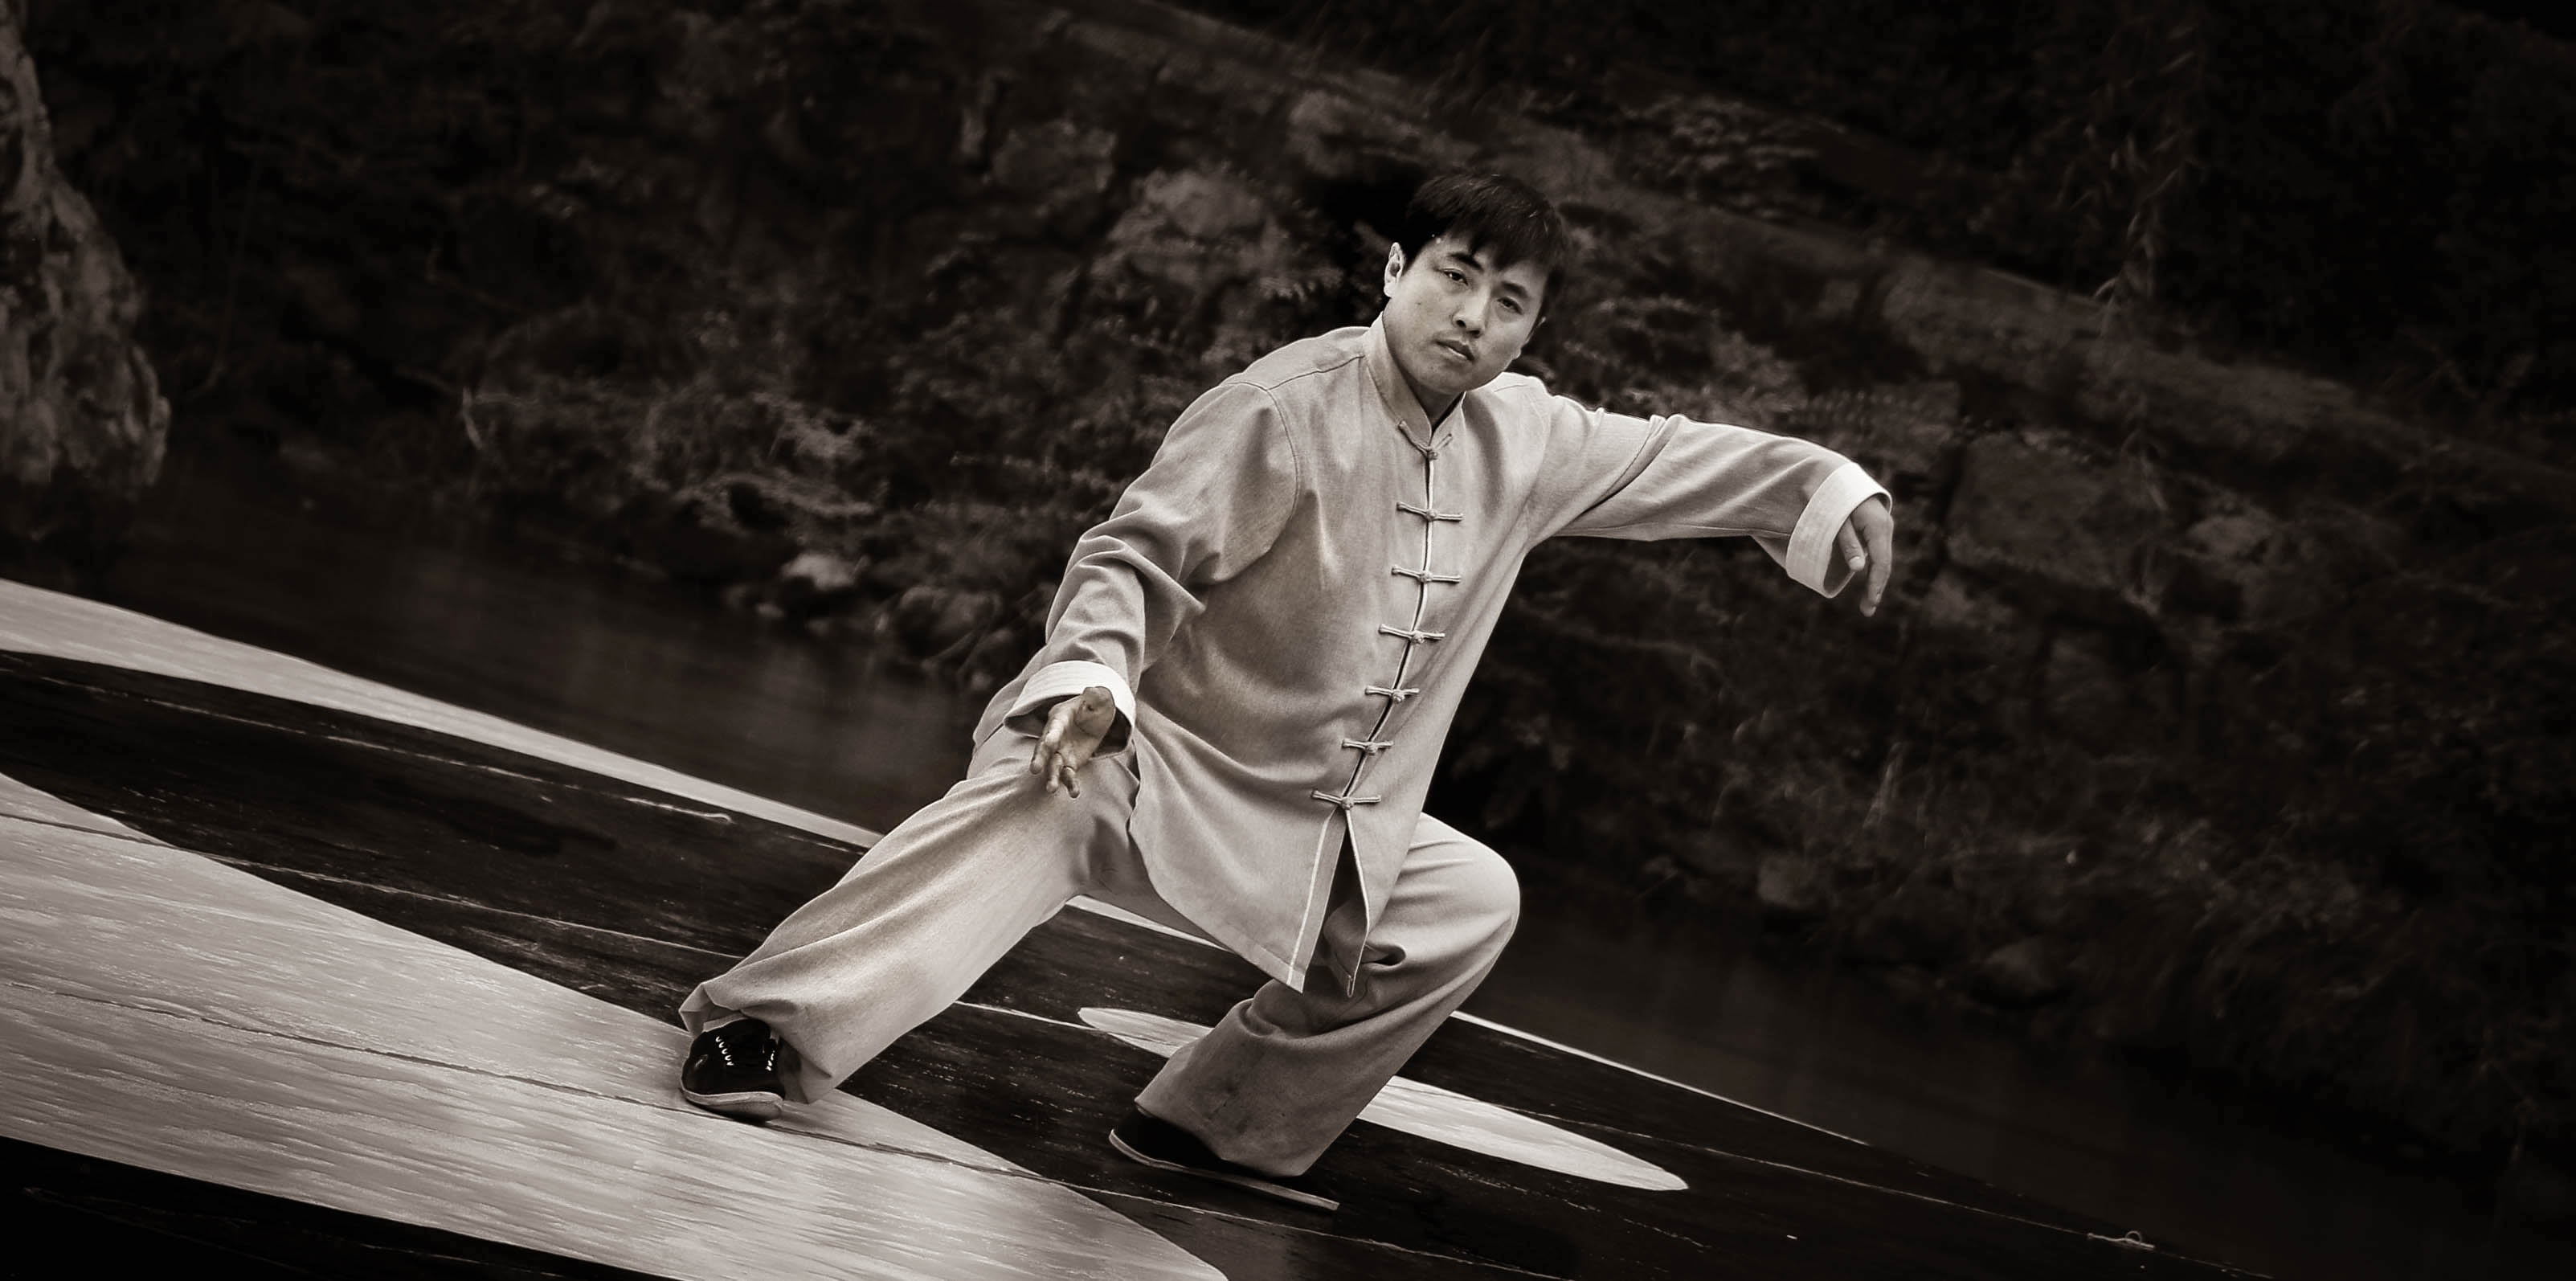 PHOTO-Kungfu-man.jpg